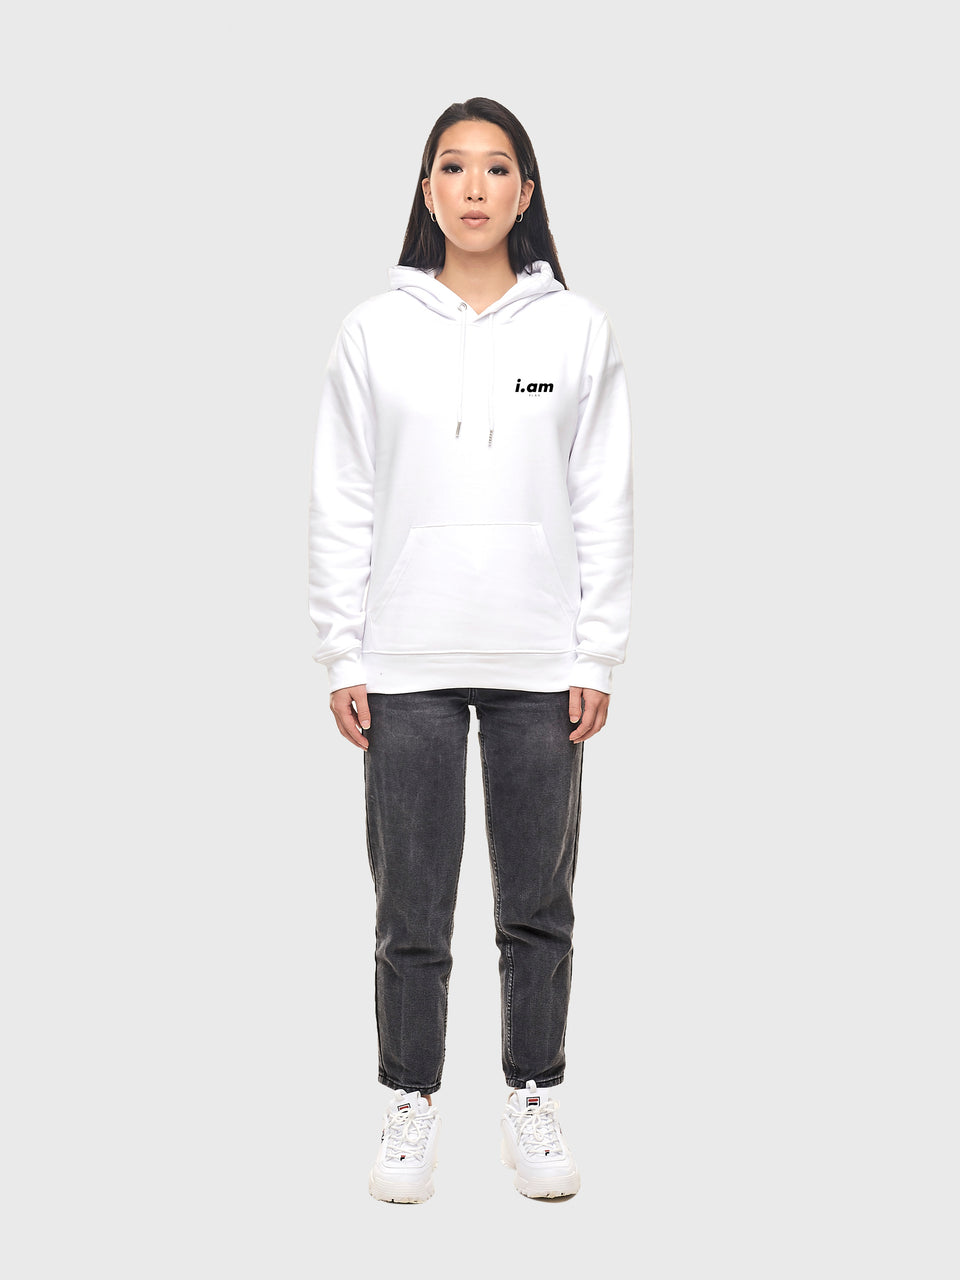 Am.bisch.ous - White - Unisex pull over hoodie